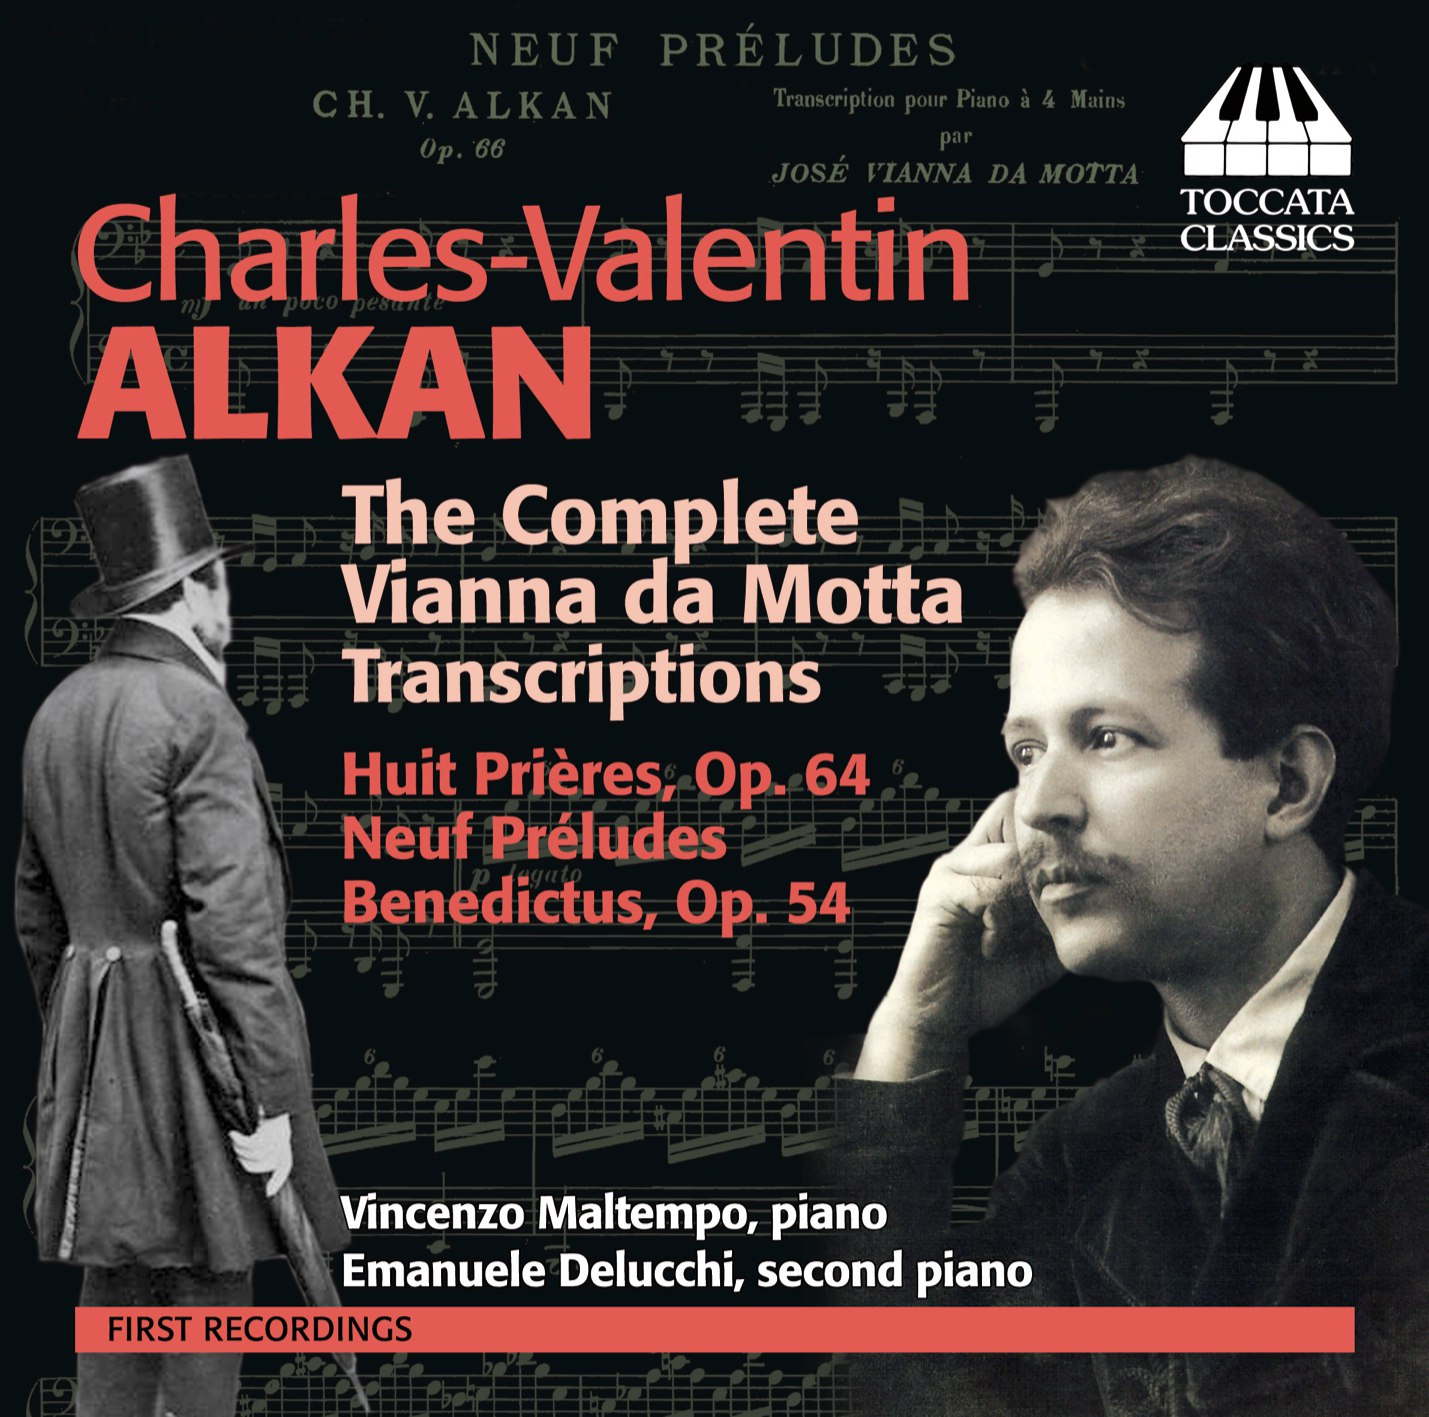 Charles Valentin Alkan: The Complete Vianna Da Motta Transcriptions |  Recordings | Toccata Classics | Toccata Press